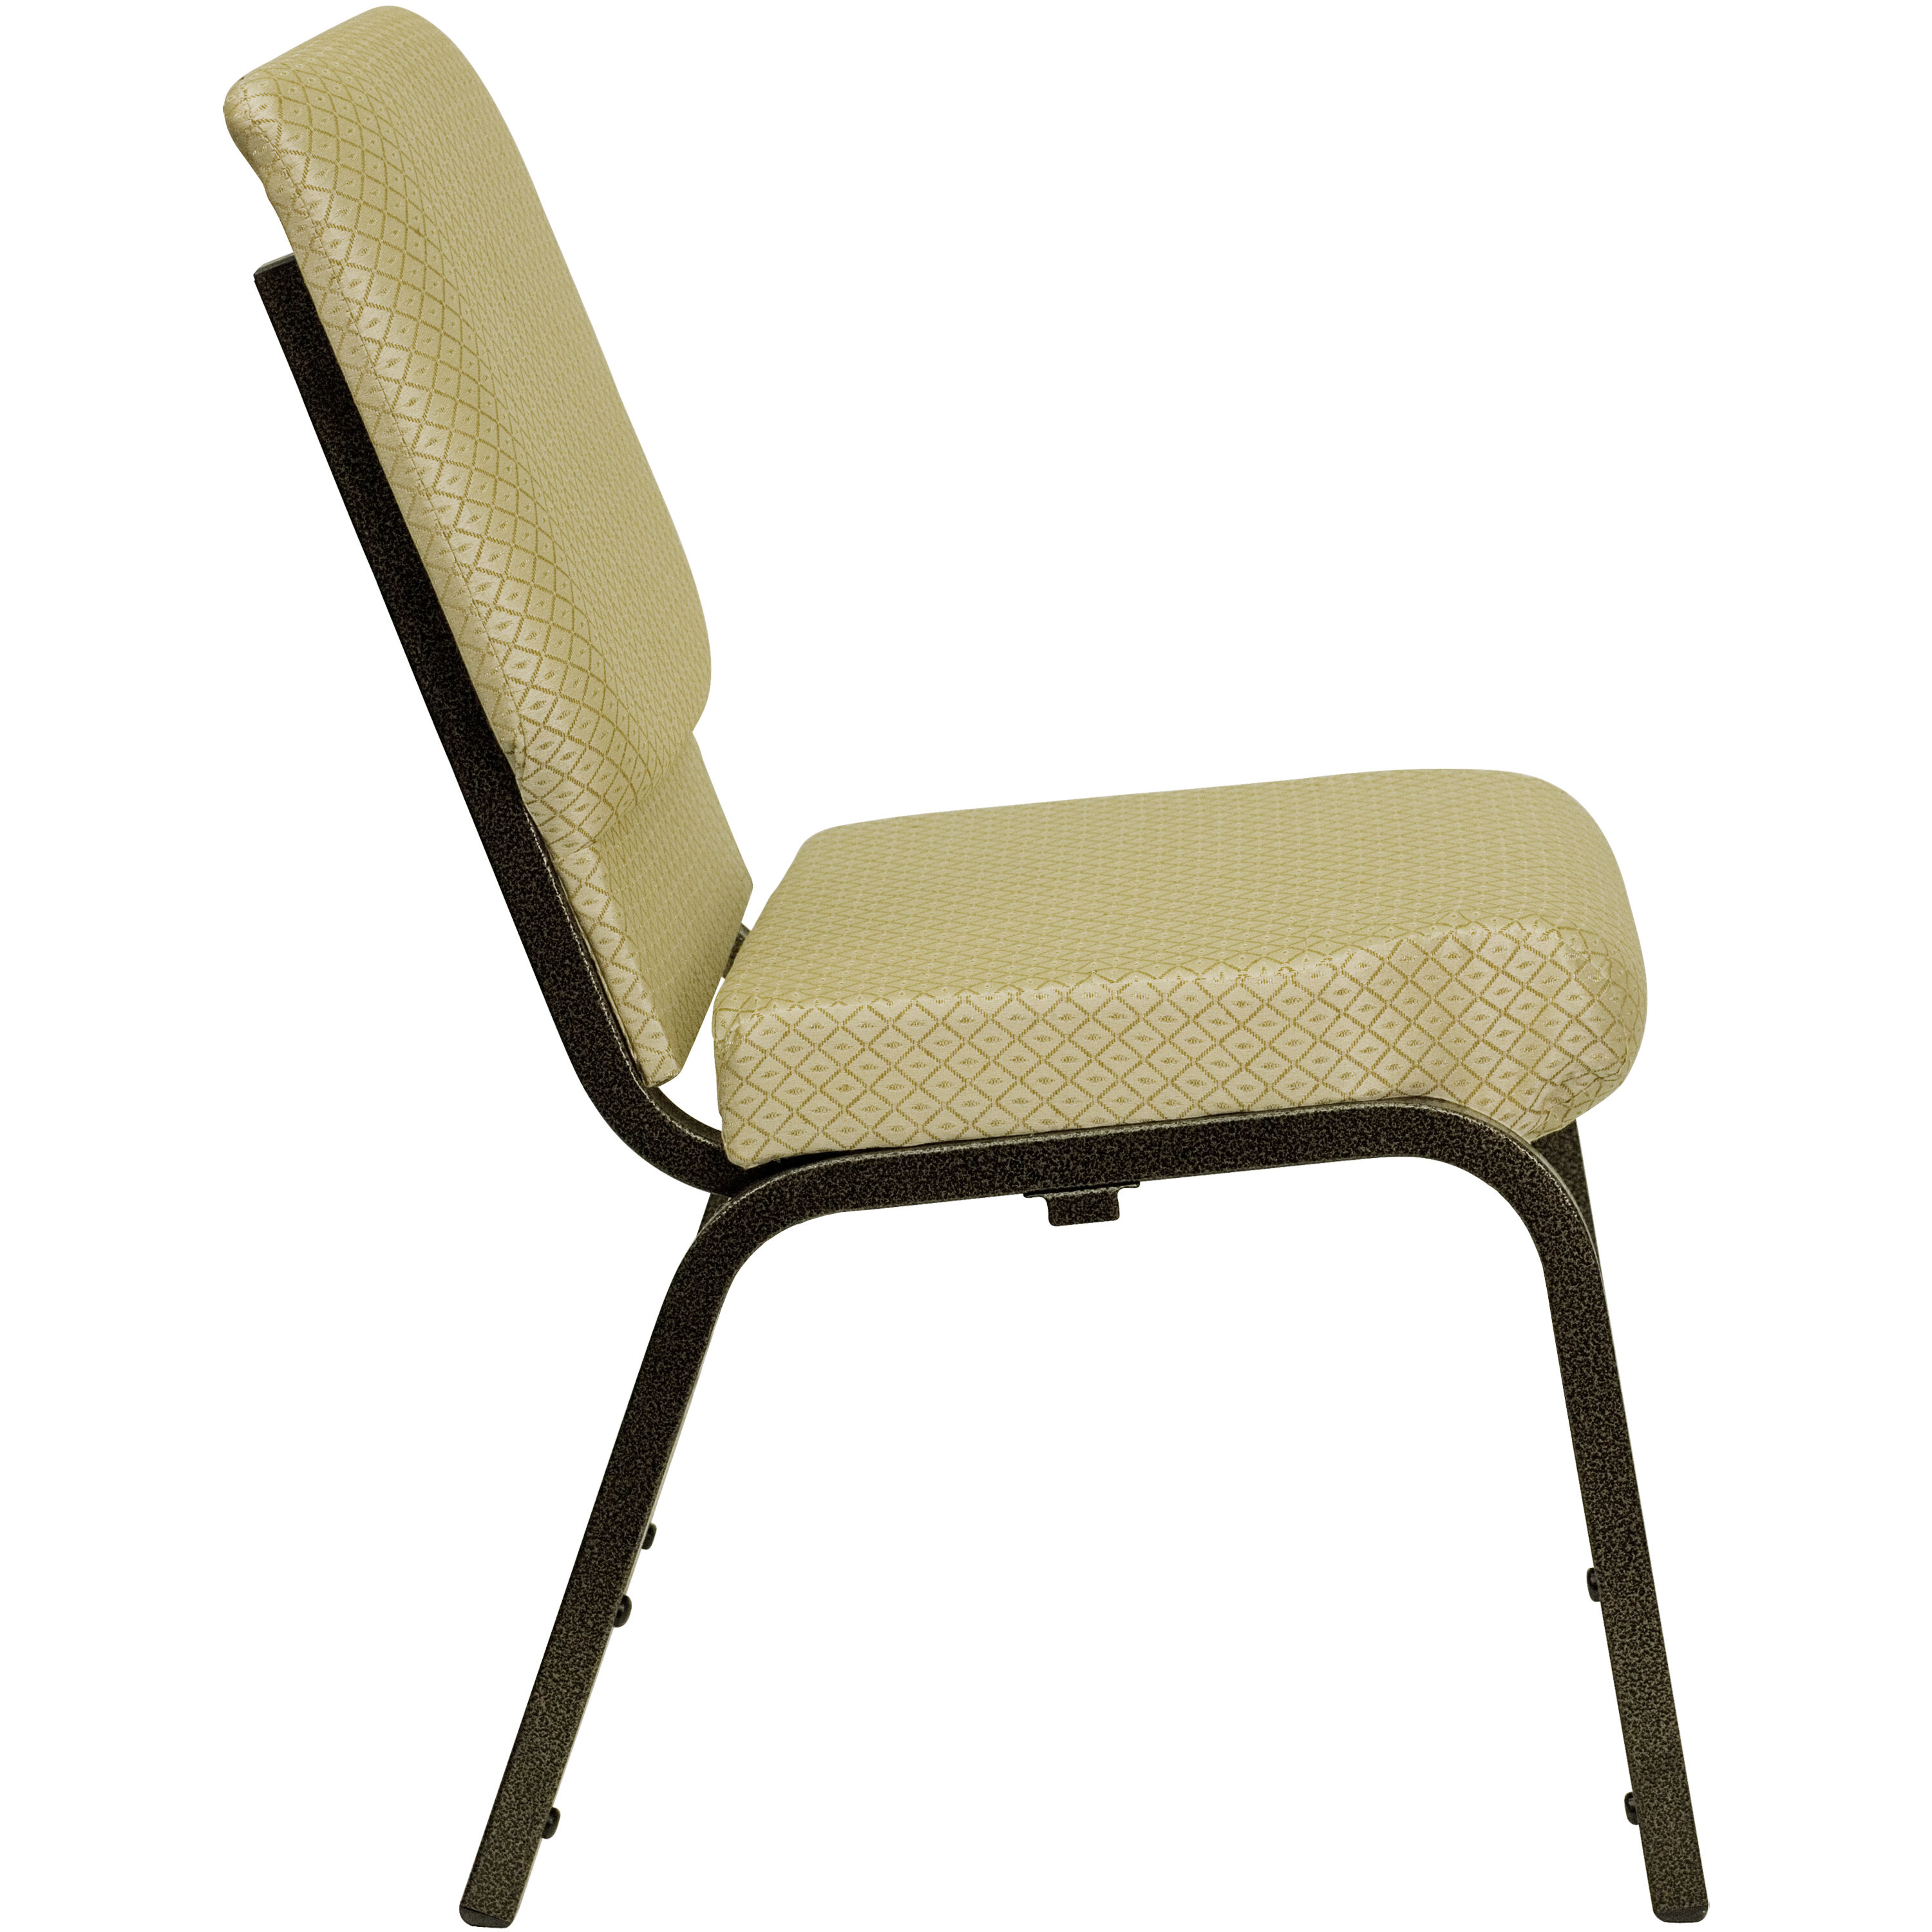 stackable church chairs dining tufted beige fabric chair xu ch 60096 bge gg bizchair